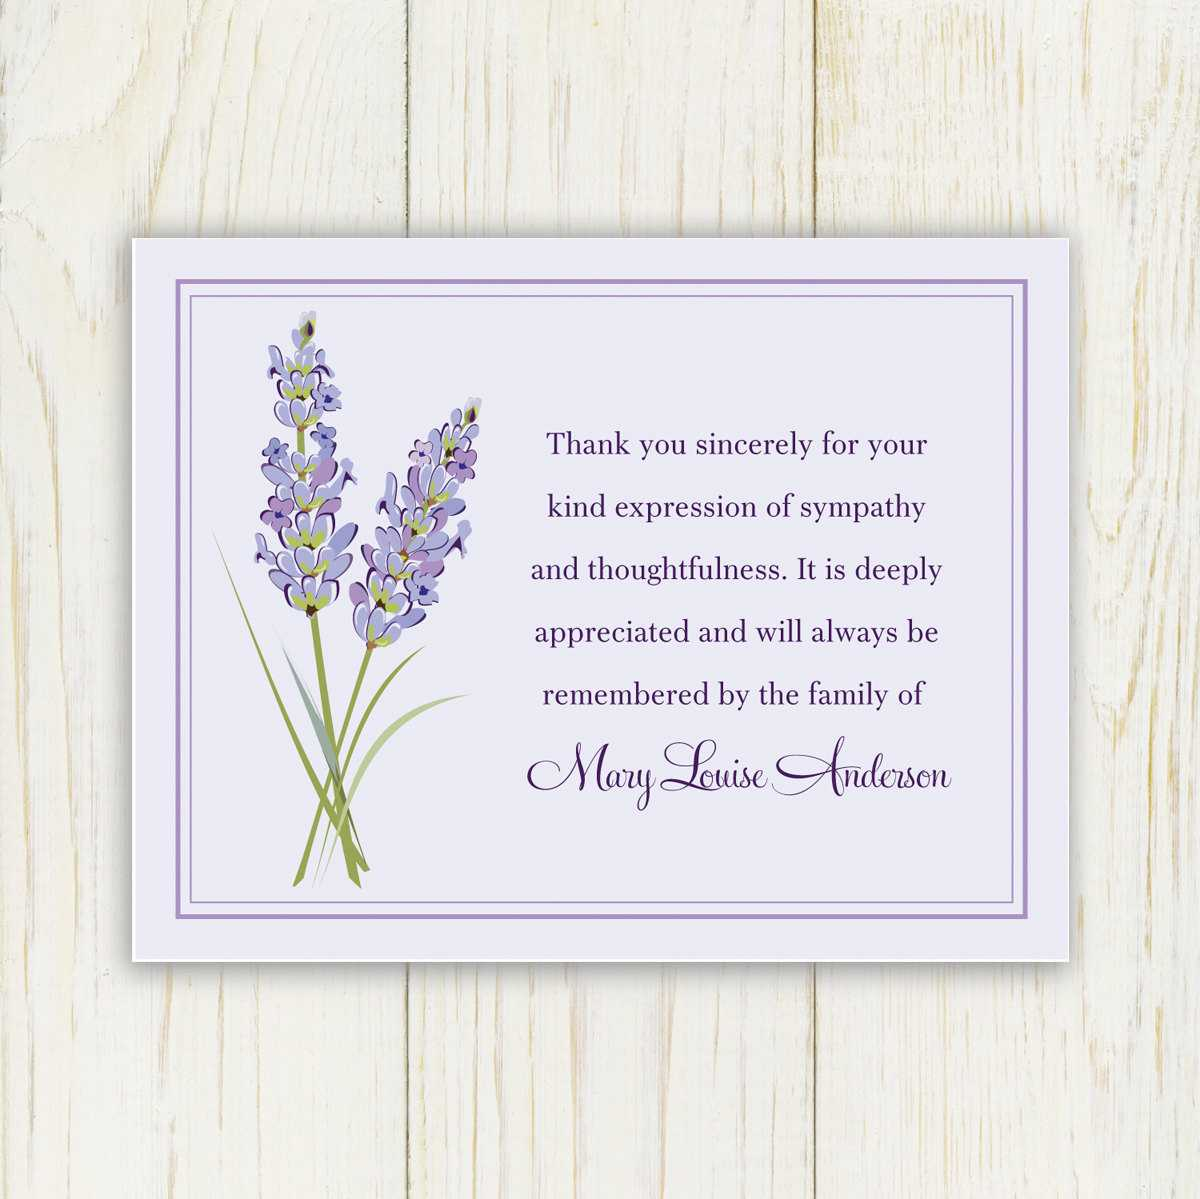 Free Funeral Thank You Cards Templates – Air Media Design With Regard To Sympathy Thank You Card Template